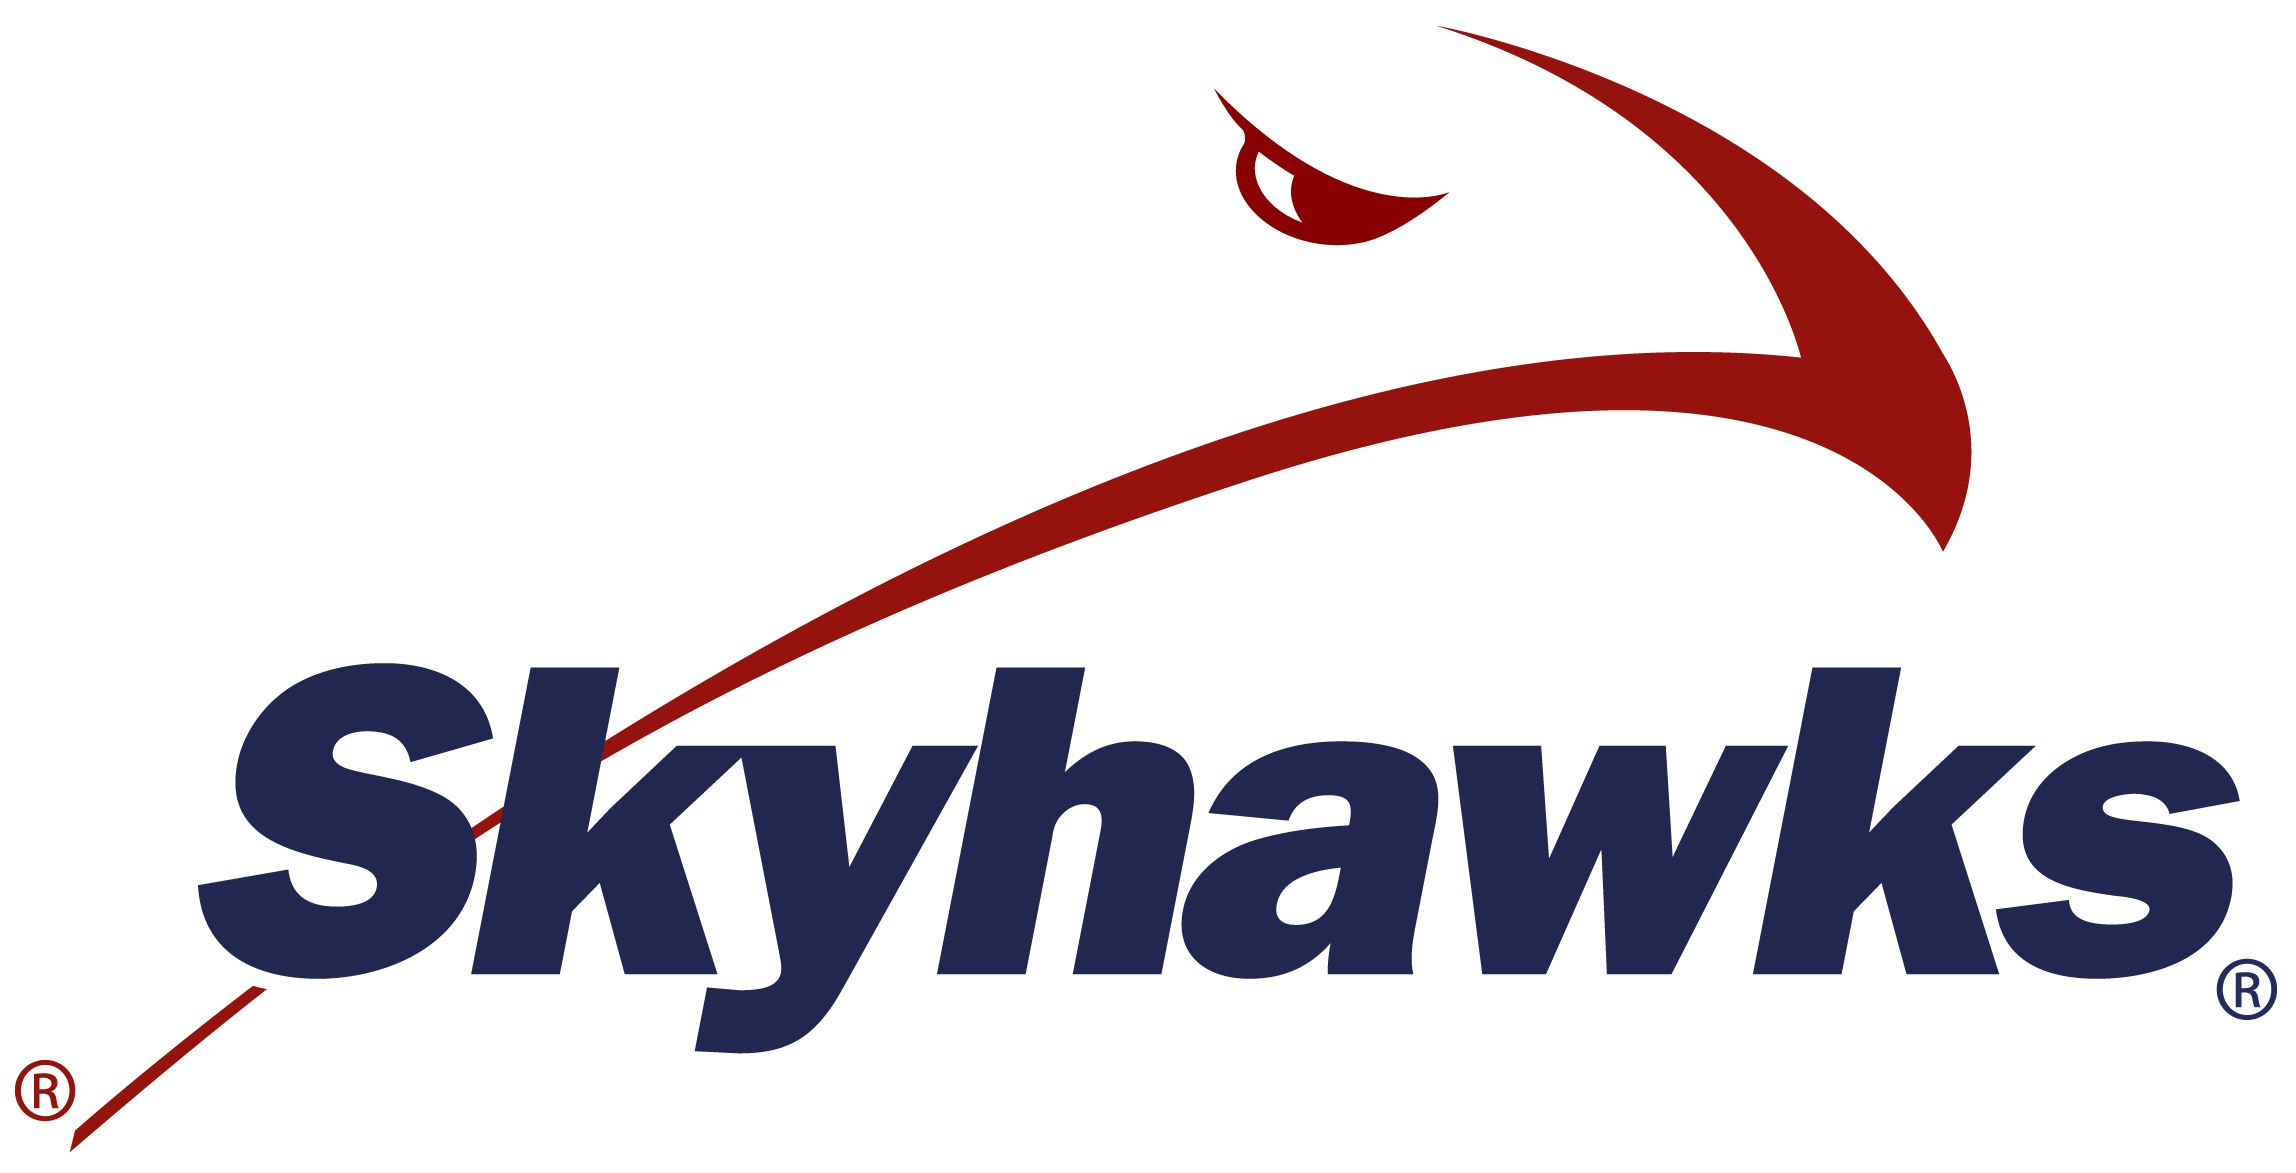 sports - Skyhawks logo